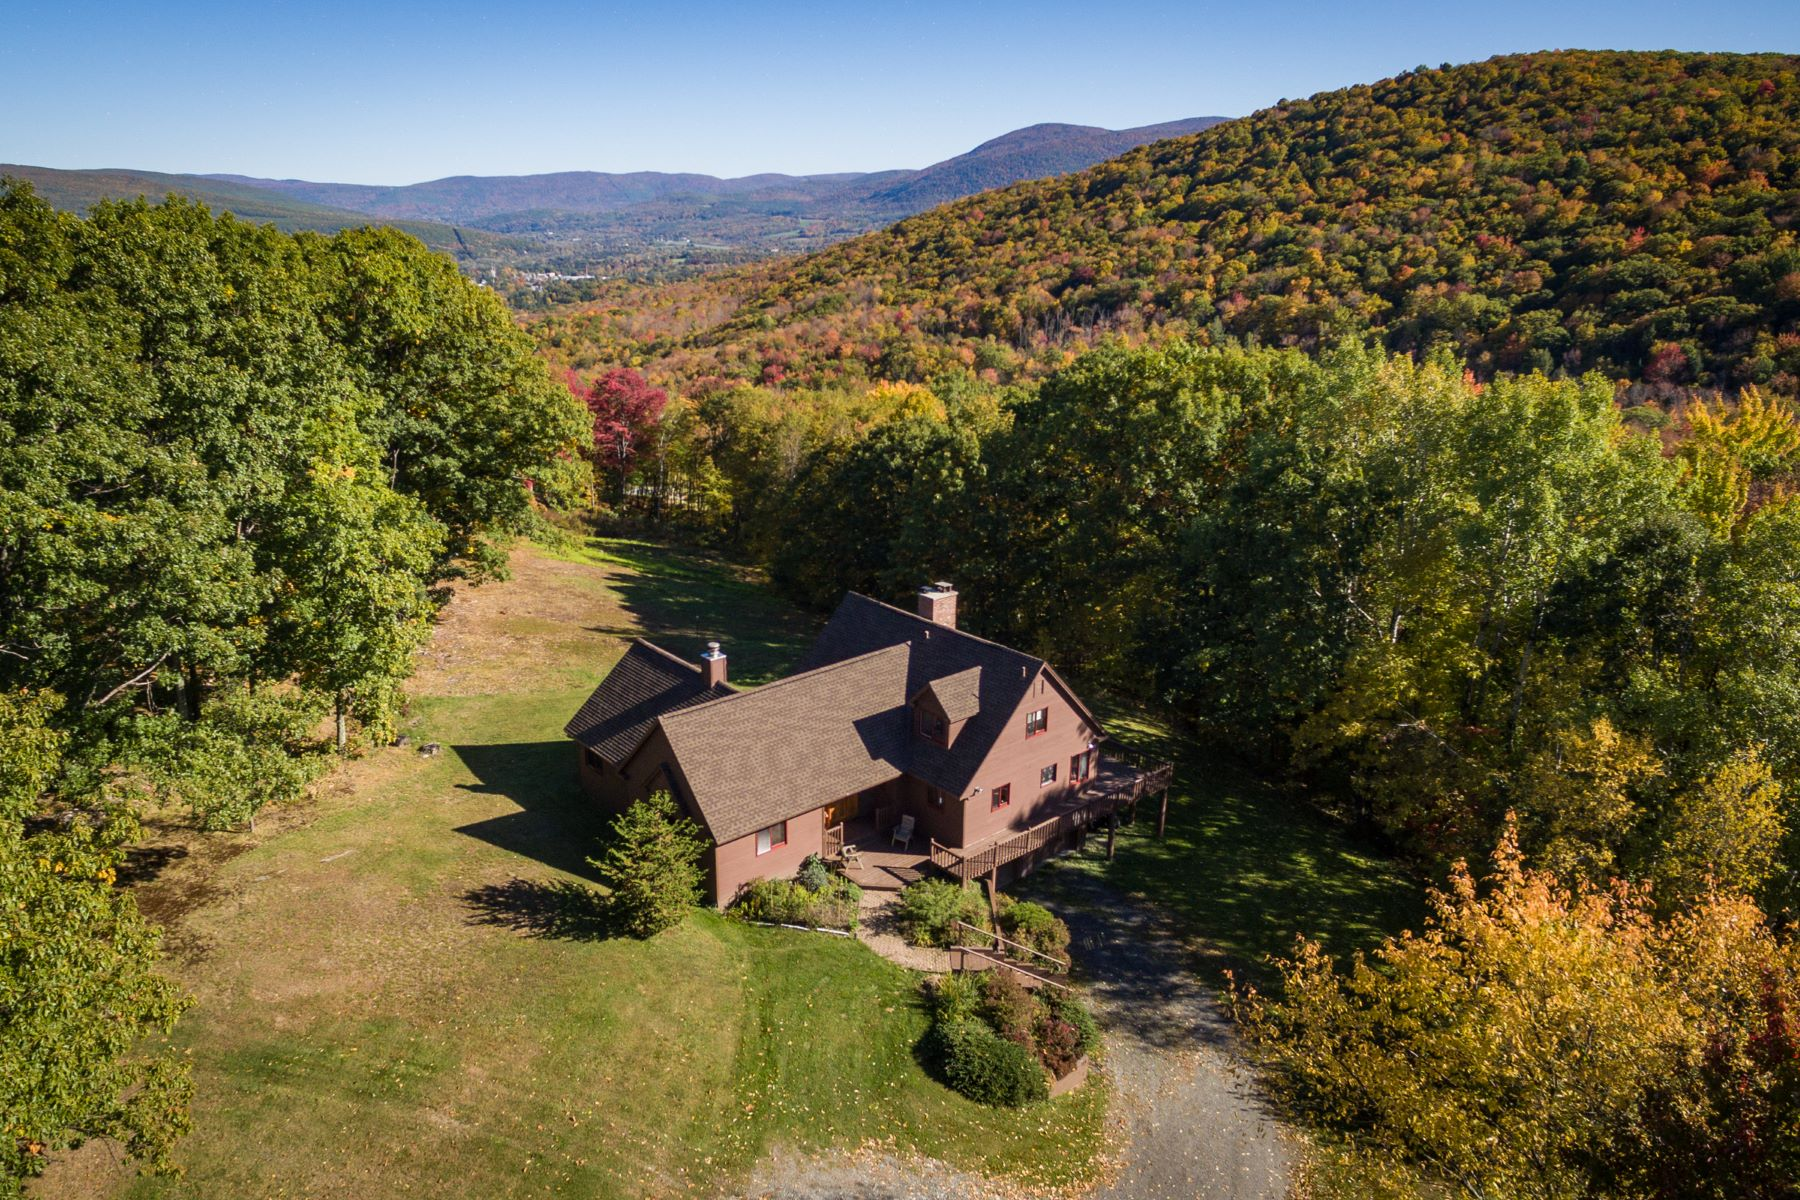 Single Family Homes for Sale at Large Acreage Bordering 5000 plus Acres of Protected Forest with Views Over the 748 Petersburg Rd Williamstown, Massachusetts 01267 United States